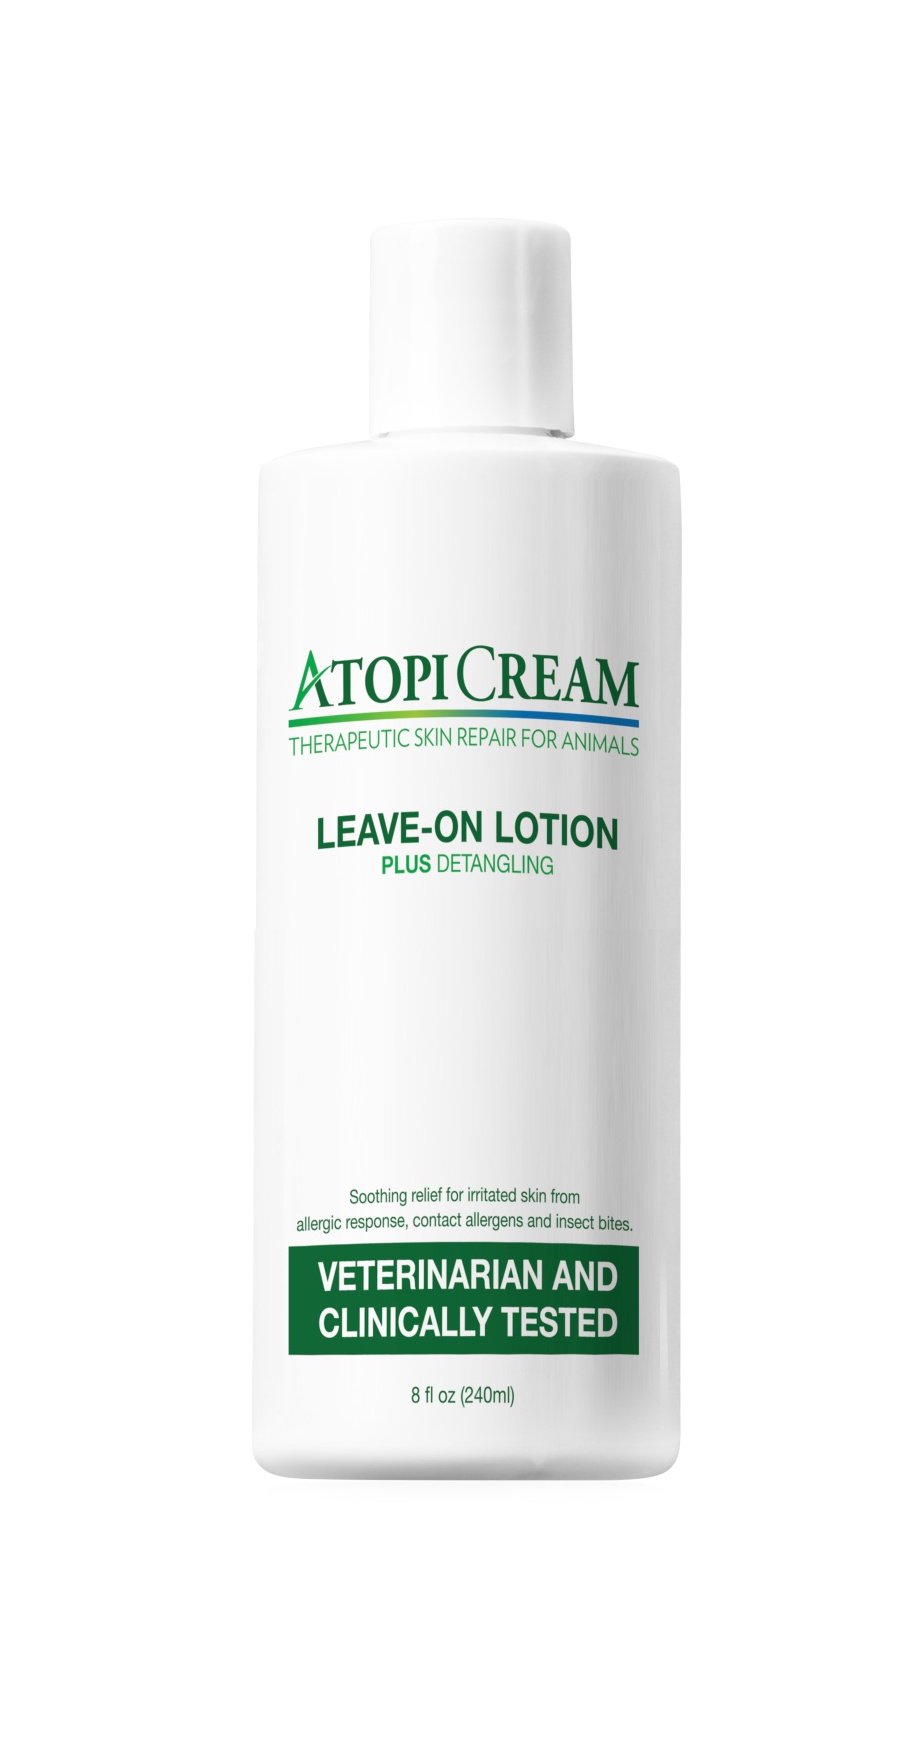 AtopiCream Leave-On Lotion for Pets - Relief of Itching, Skin Irritation and Rashes due to Allergic Response Plus Detangles 8oz by VetriMAX (Image #1)